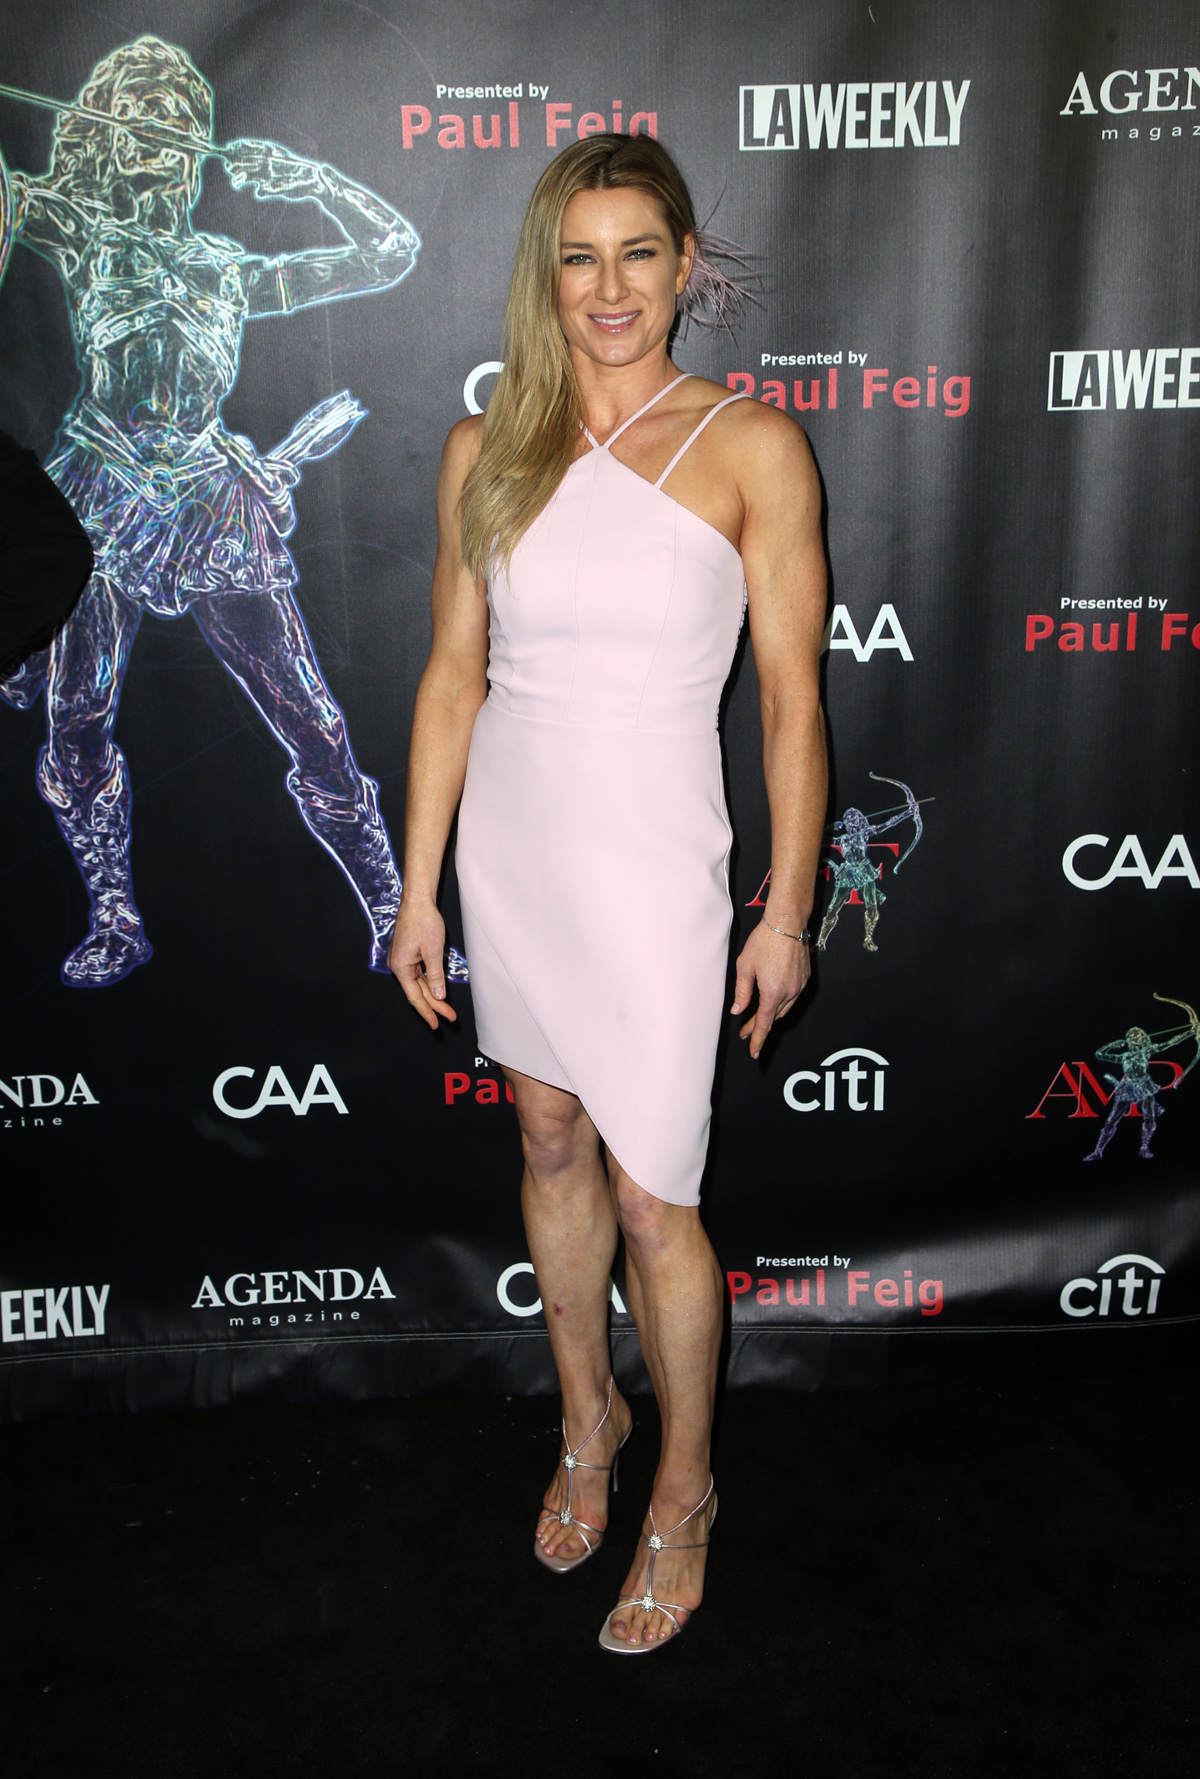 BEVERLY HILLS, CA - APRIL 26: Heidi Moneymaker, at the 2018 Artemis Awards Gala at the Ahrya Fine Arts Theater in Beverly Hills, California on April 26, 2018. Credit: Faye Sadou/MediaPunch